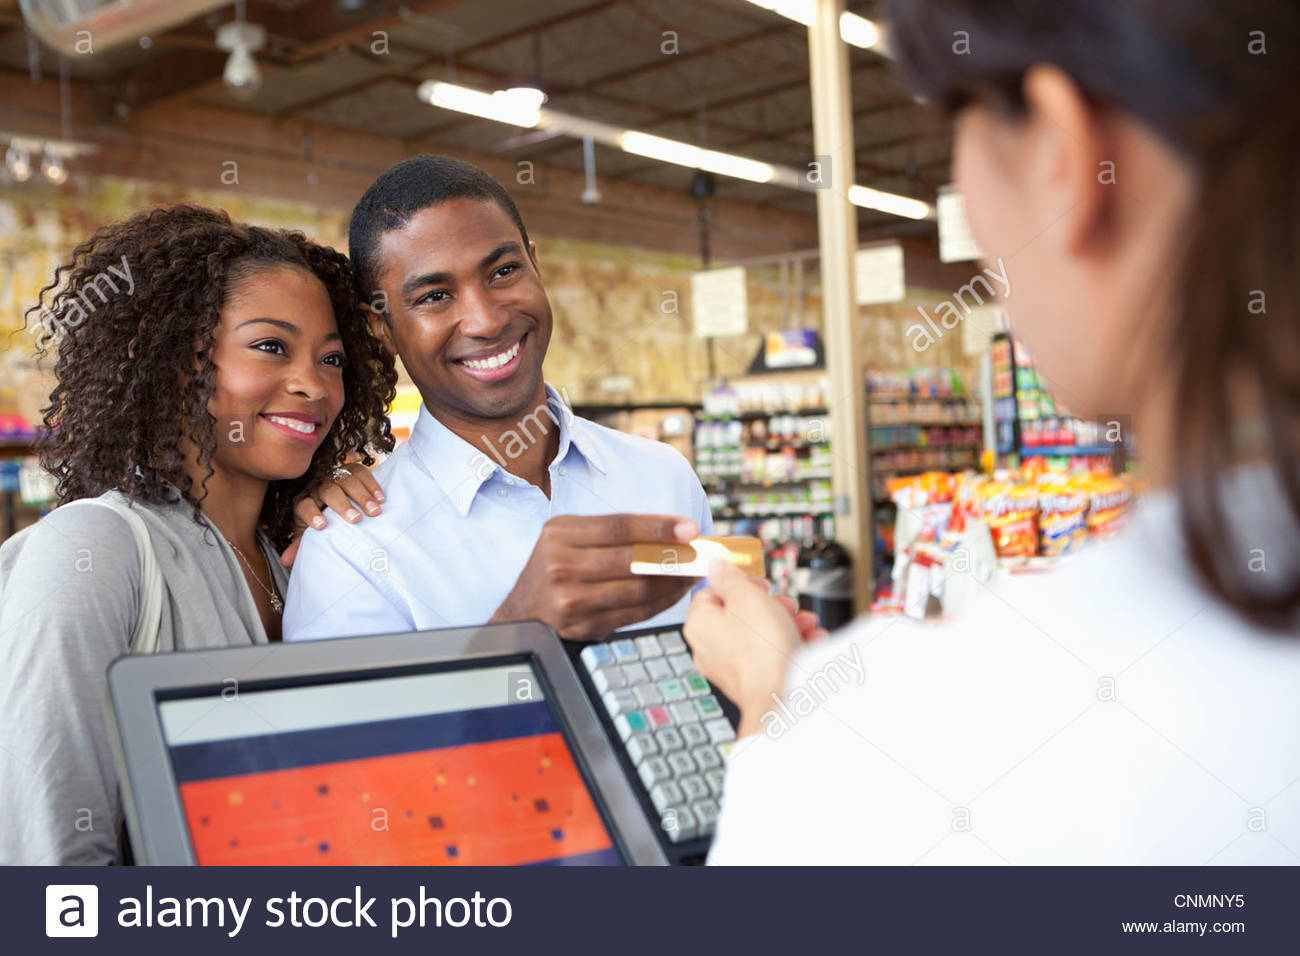 Couple buying groceries in supermarket - Stock Image